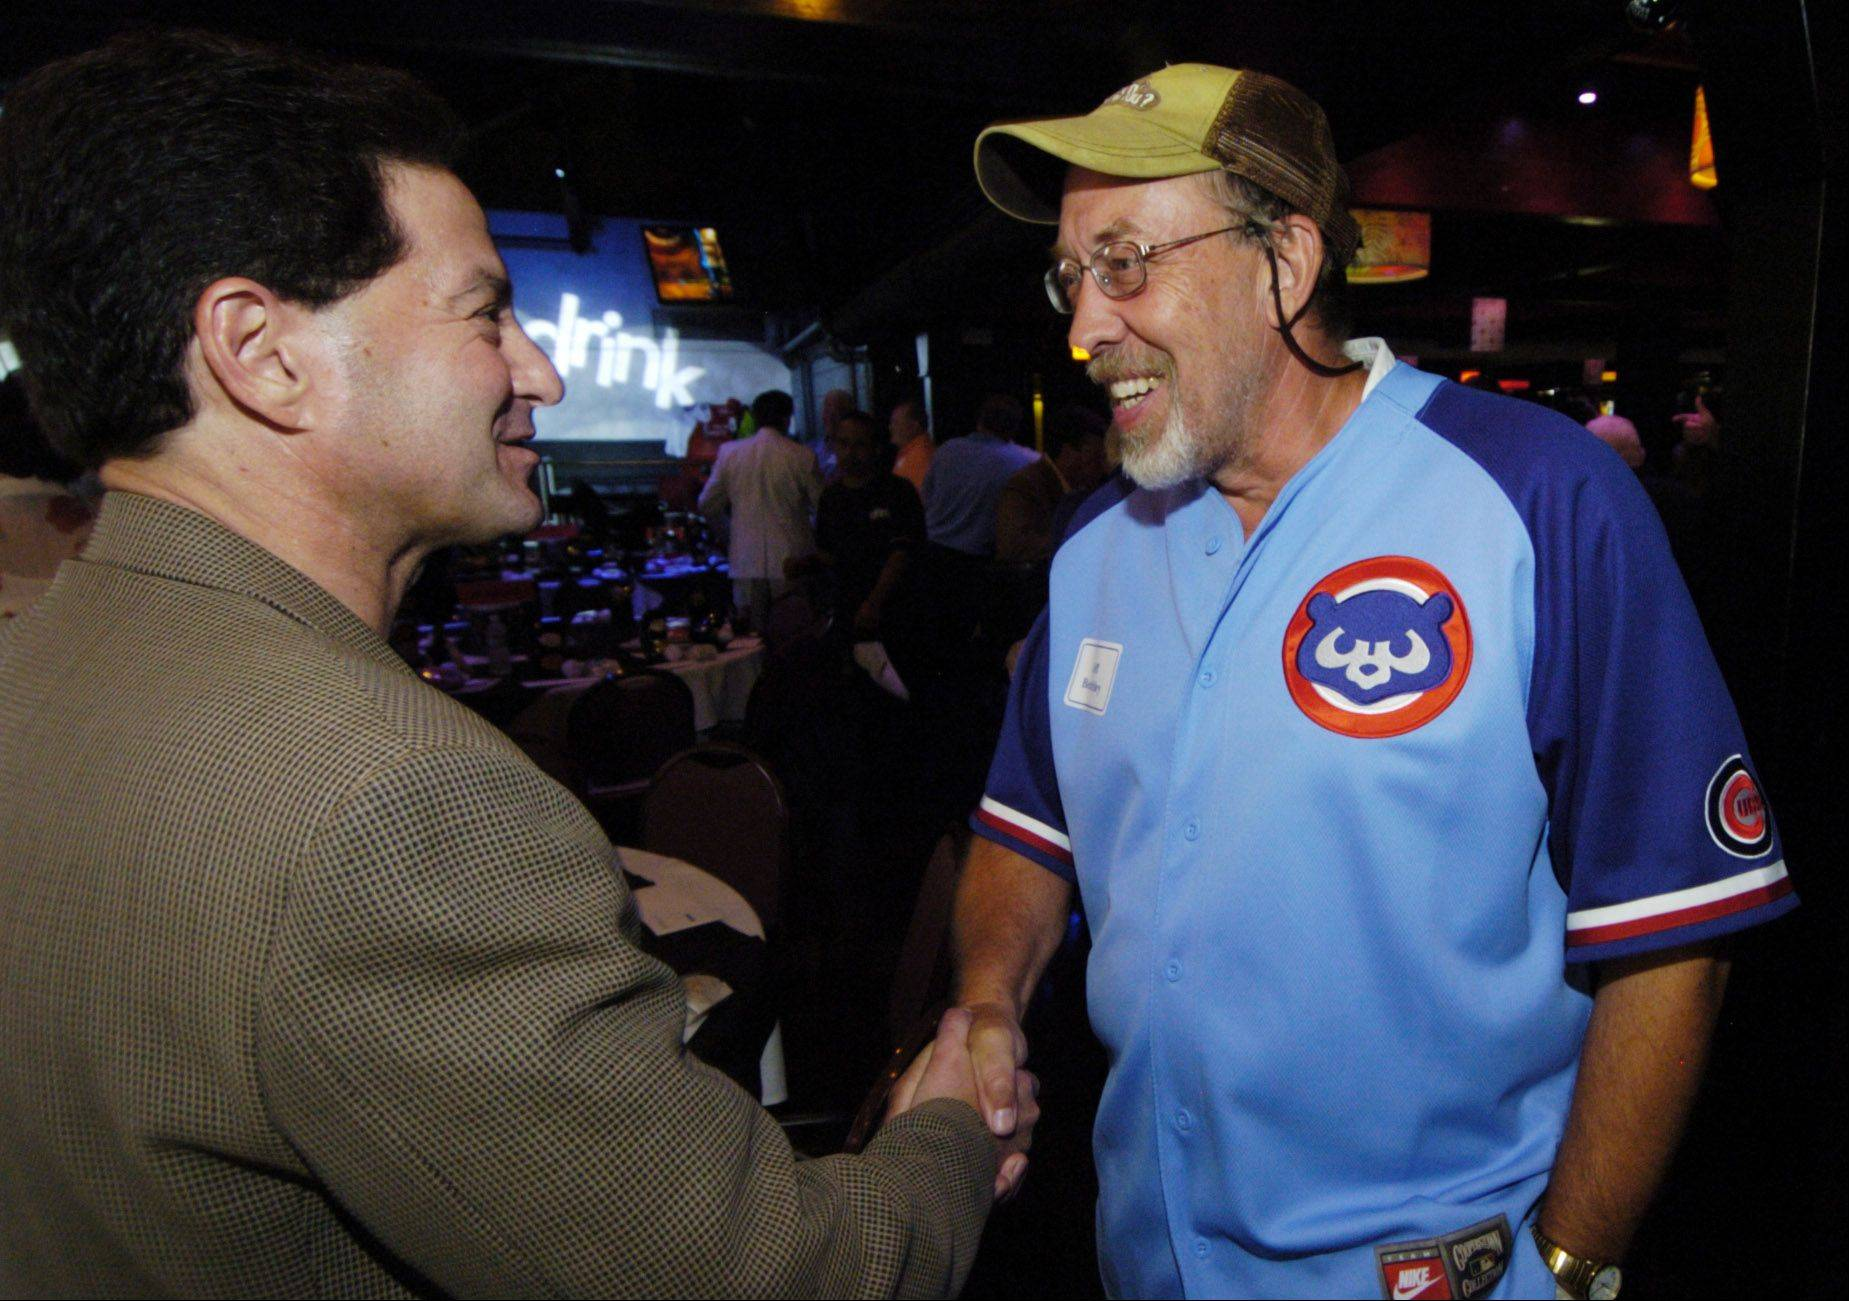 Daily Herald sports columnist Barry Rozner greets subscriber Jeff Benchley of Elgin during a Subscriber Total Access event celebrating the life of Ron Santo.